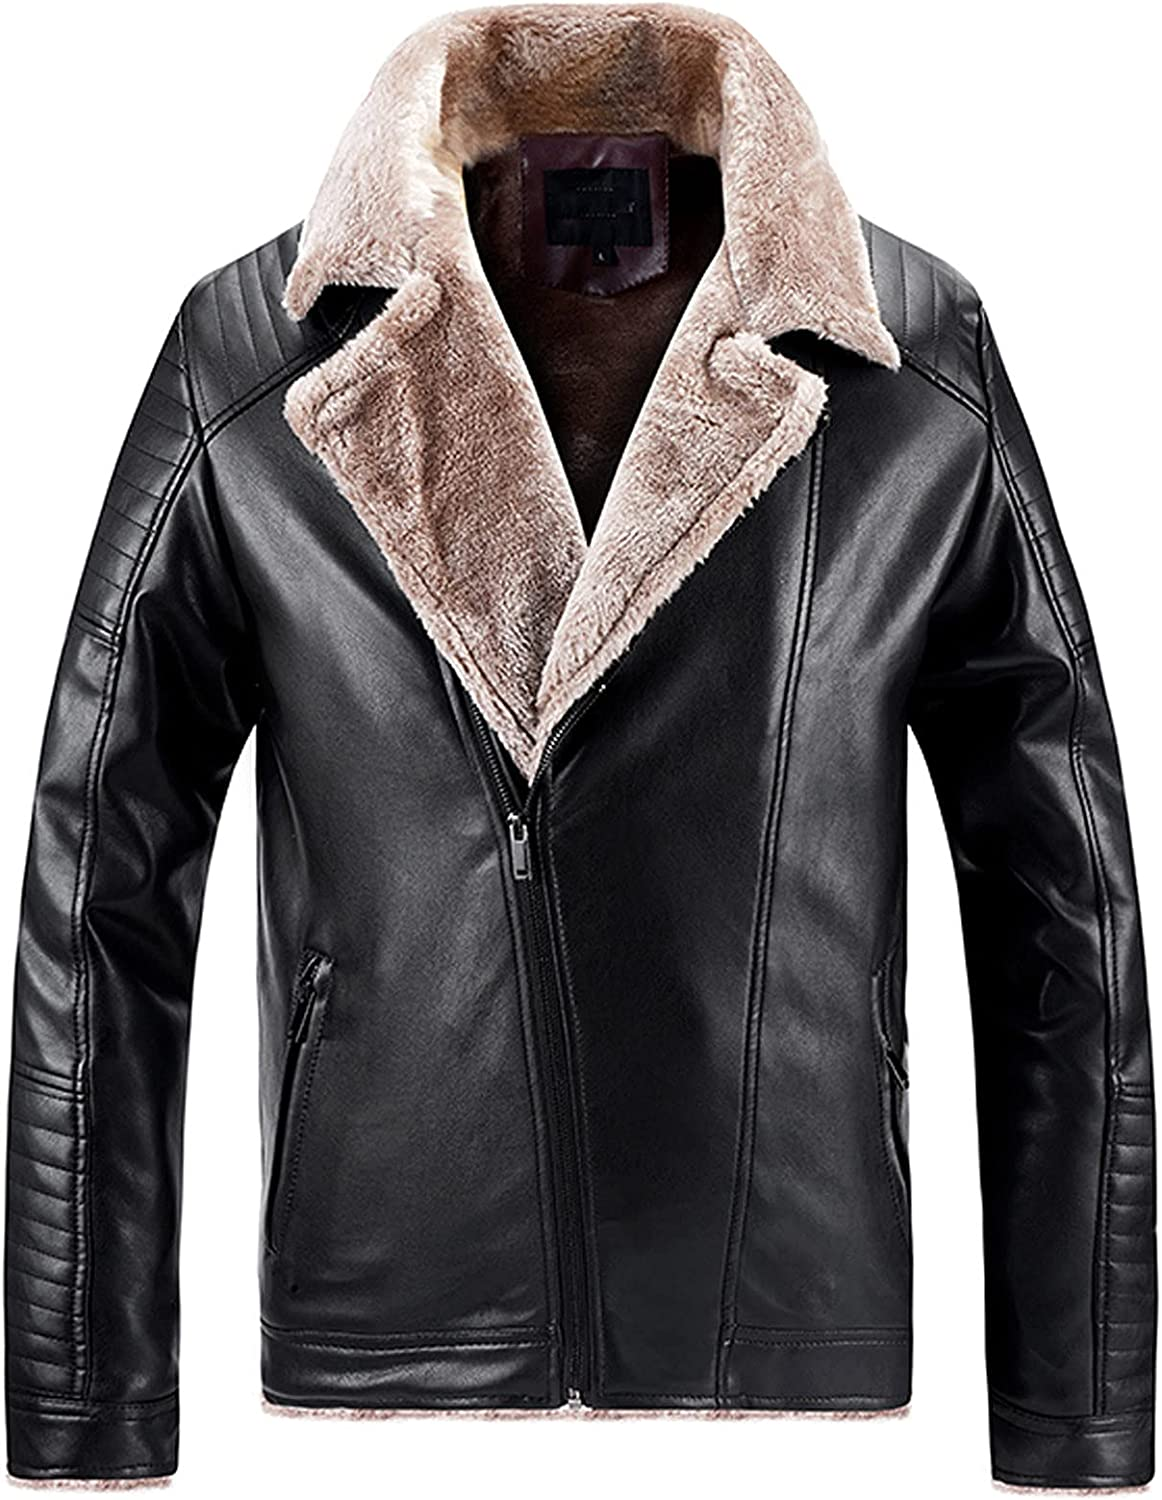 Beshion Mens Casual Sherpa Leather Jacket Winter Warm Long Sleeve Pockets Big and Tall Outwear Overcoat with Zipper